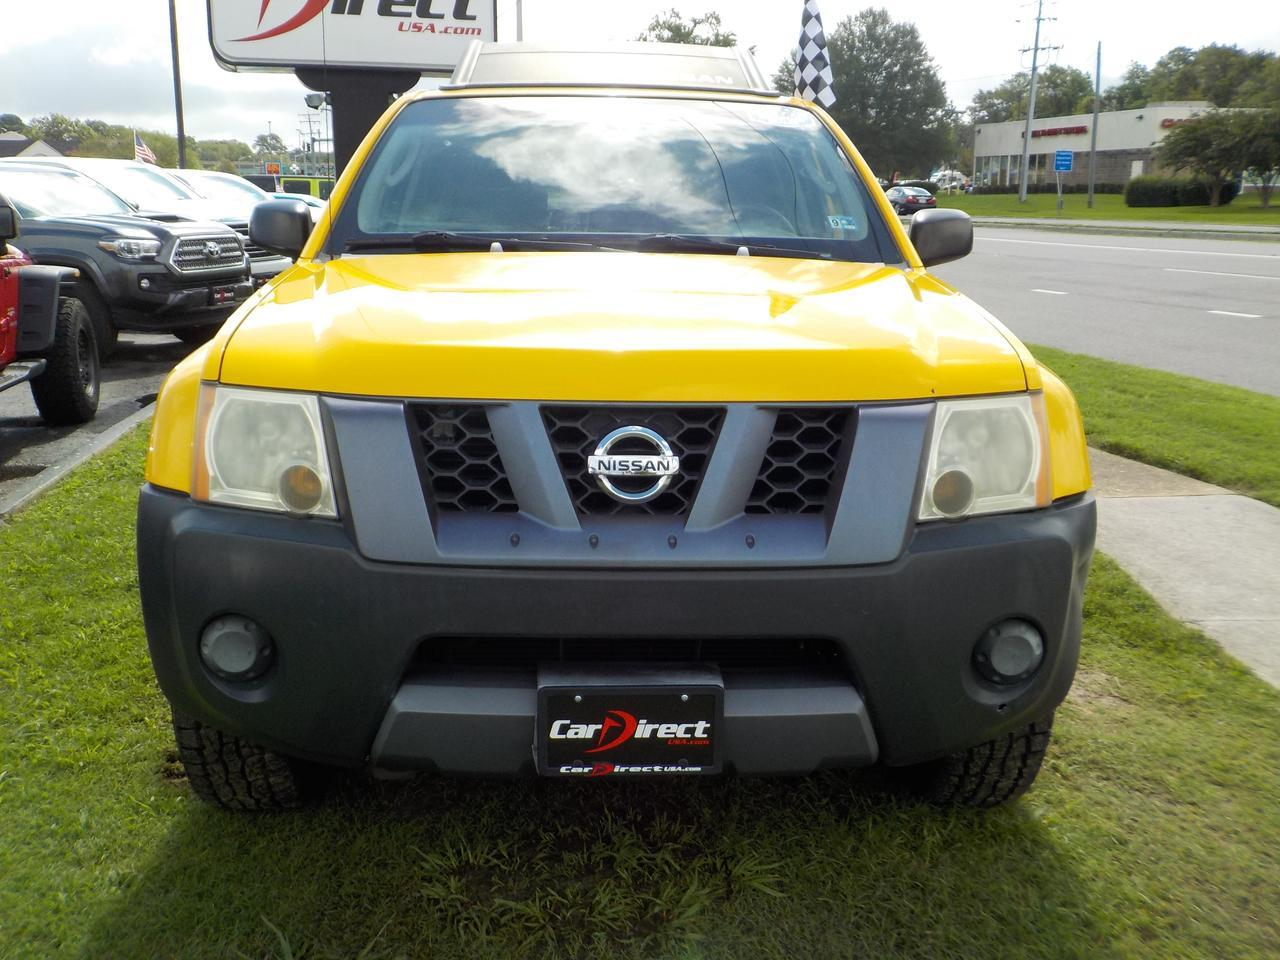 2007 NISSAN XTERRA S, WHOLESALE TO THE PUBLIC, $3700 TOTAL FOR THE WHOLE TRUCK, NOT A TRICK :))) Virginia Beach VA